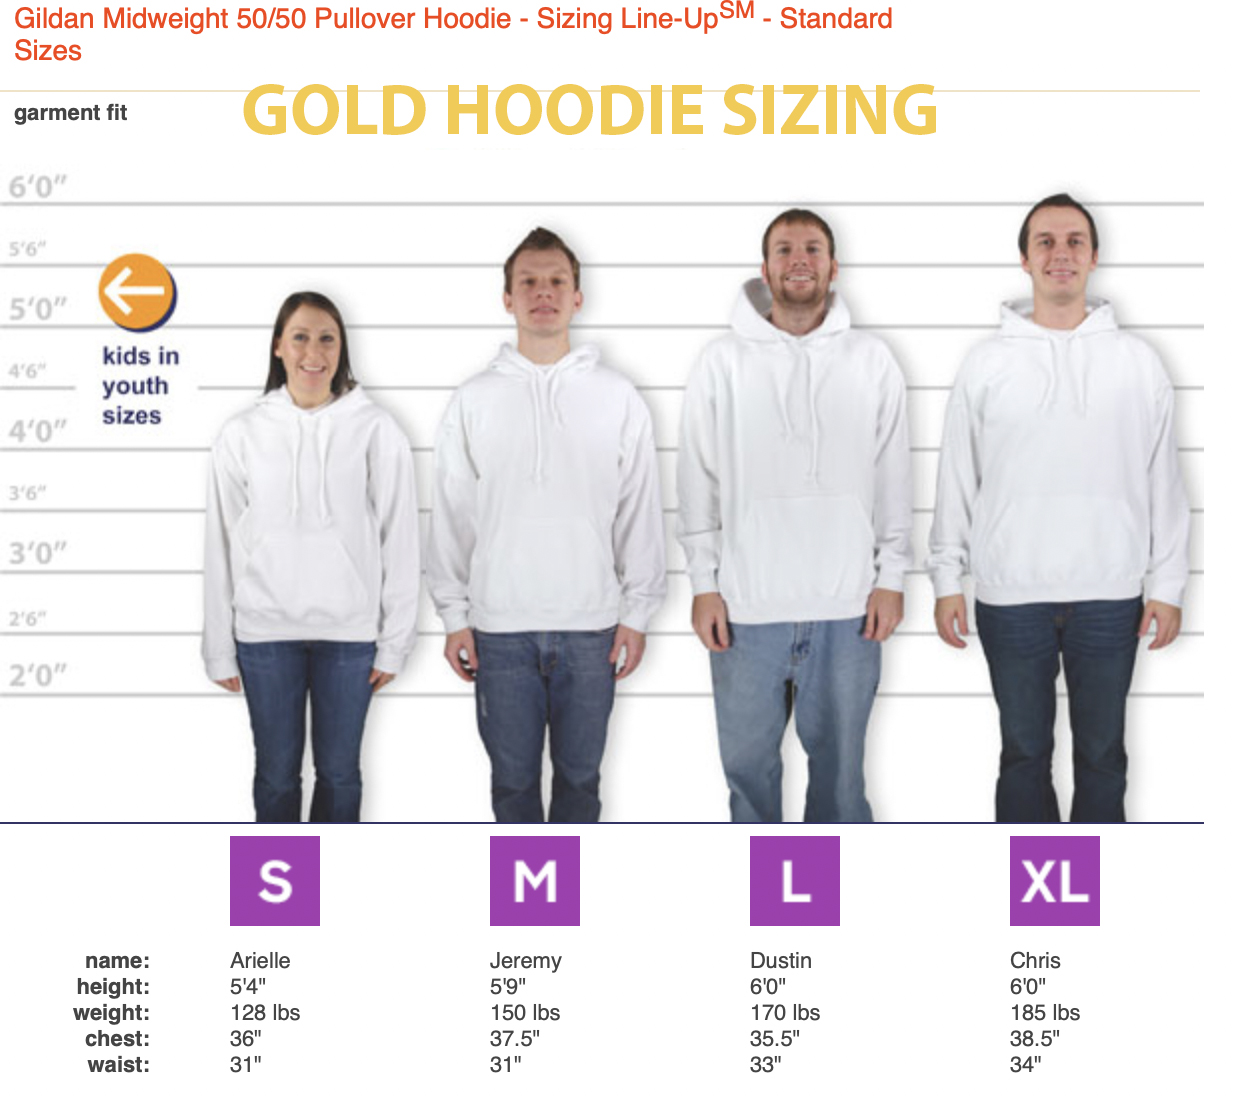 gold hoodie sizing